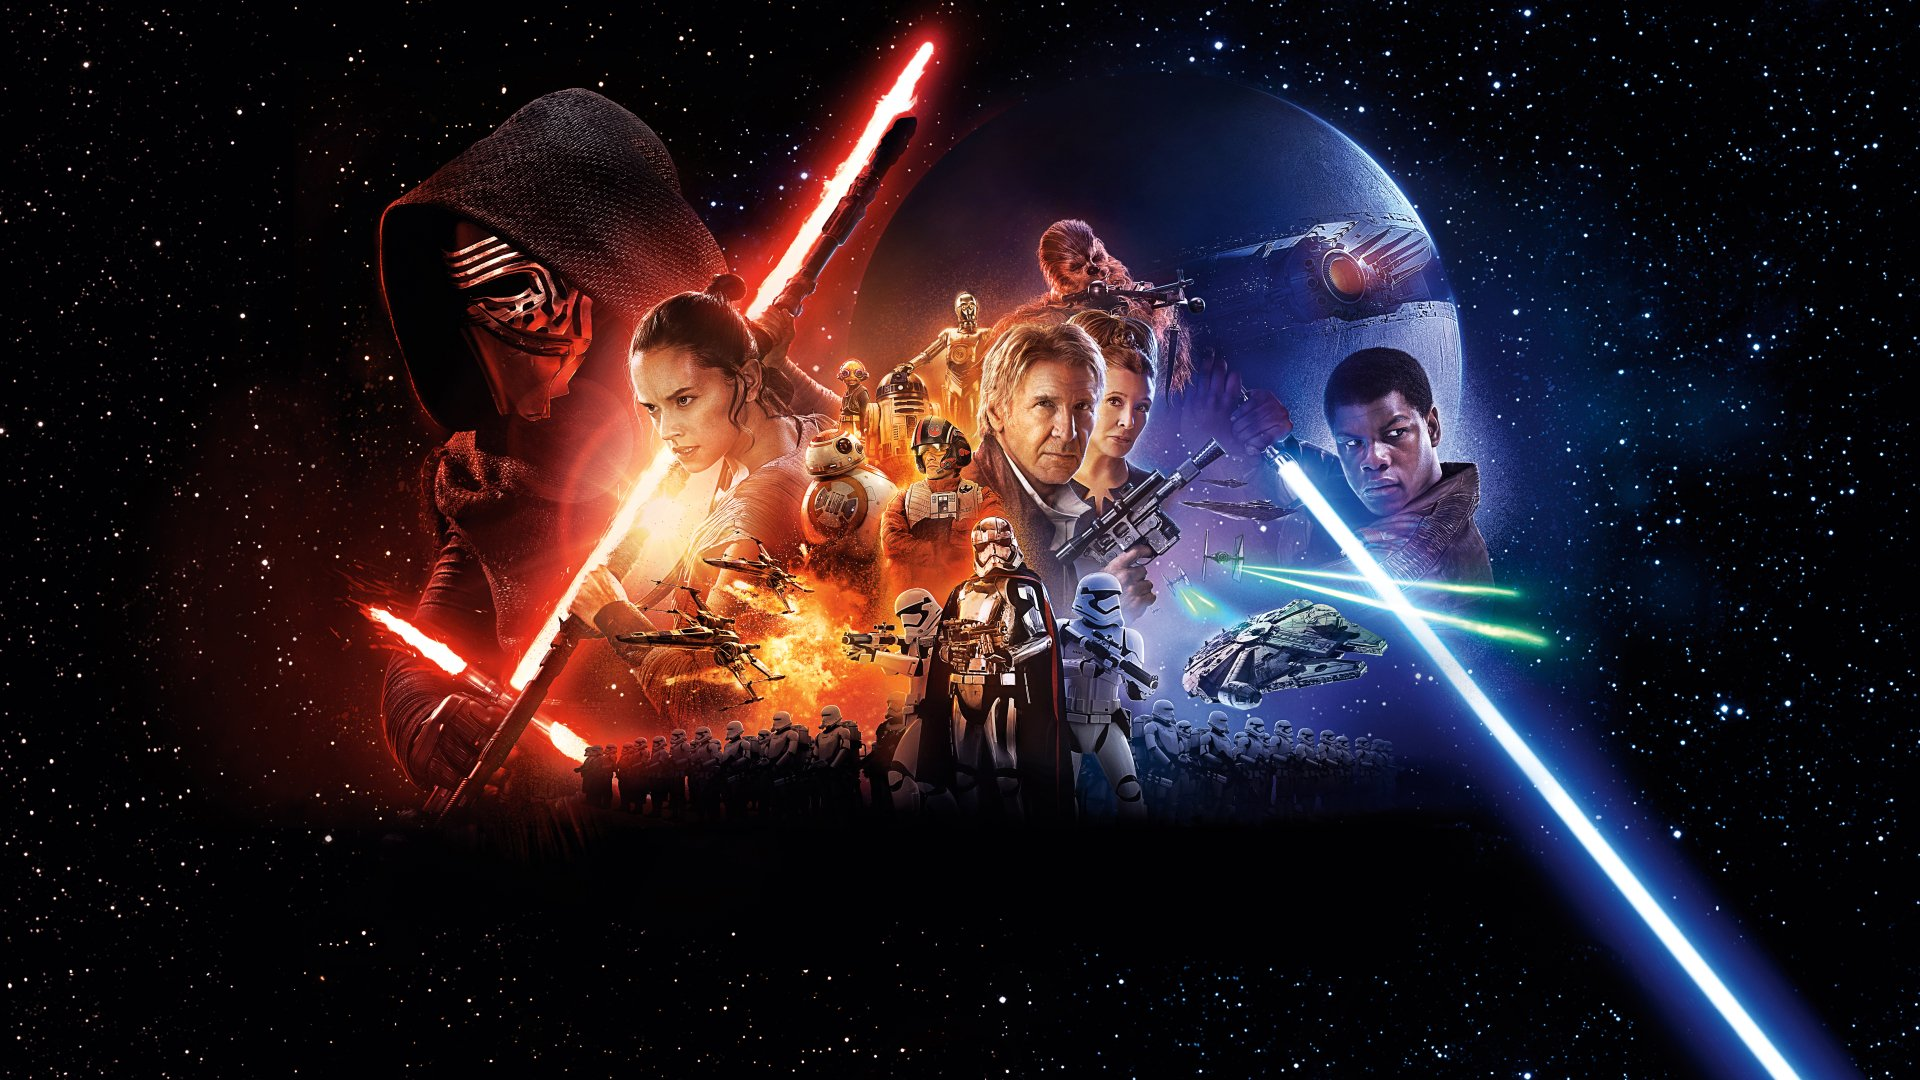 Movie - Star Wars Episode VII: The Force Awakens  Kylo Ren Han Solo Rey (Star Wars) Chewbacca R2-D2 Millennium Falcon Finn (Star Wars) Princess Leia Lightsaber Star Wars Poe Dameron BB-8 Captain Phasma Wallpaper